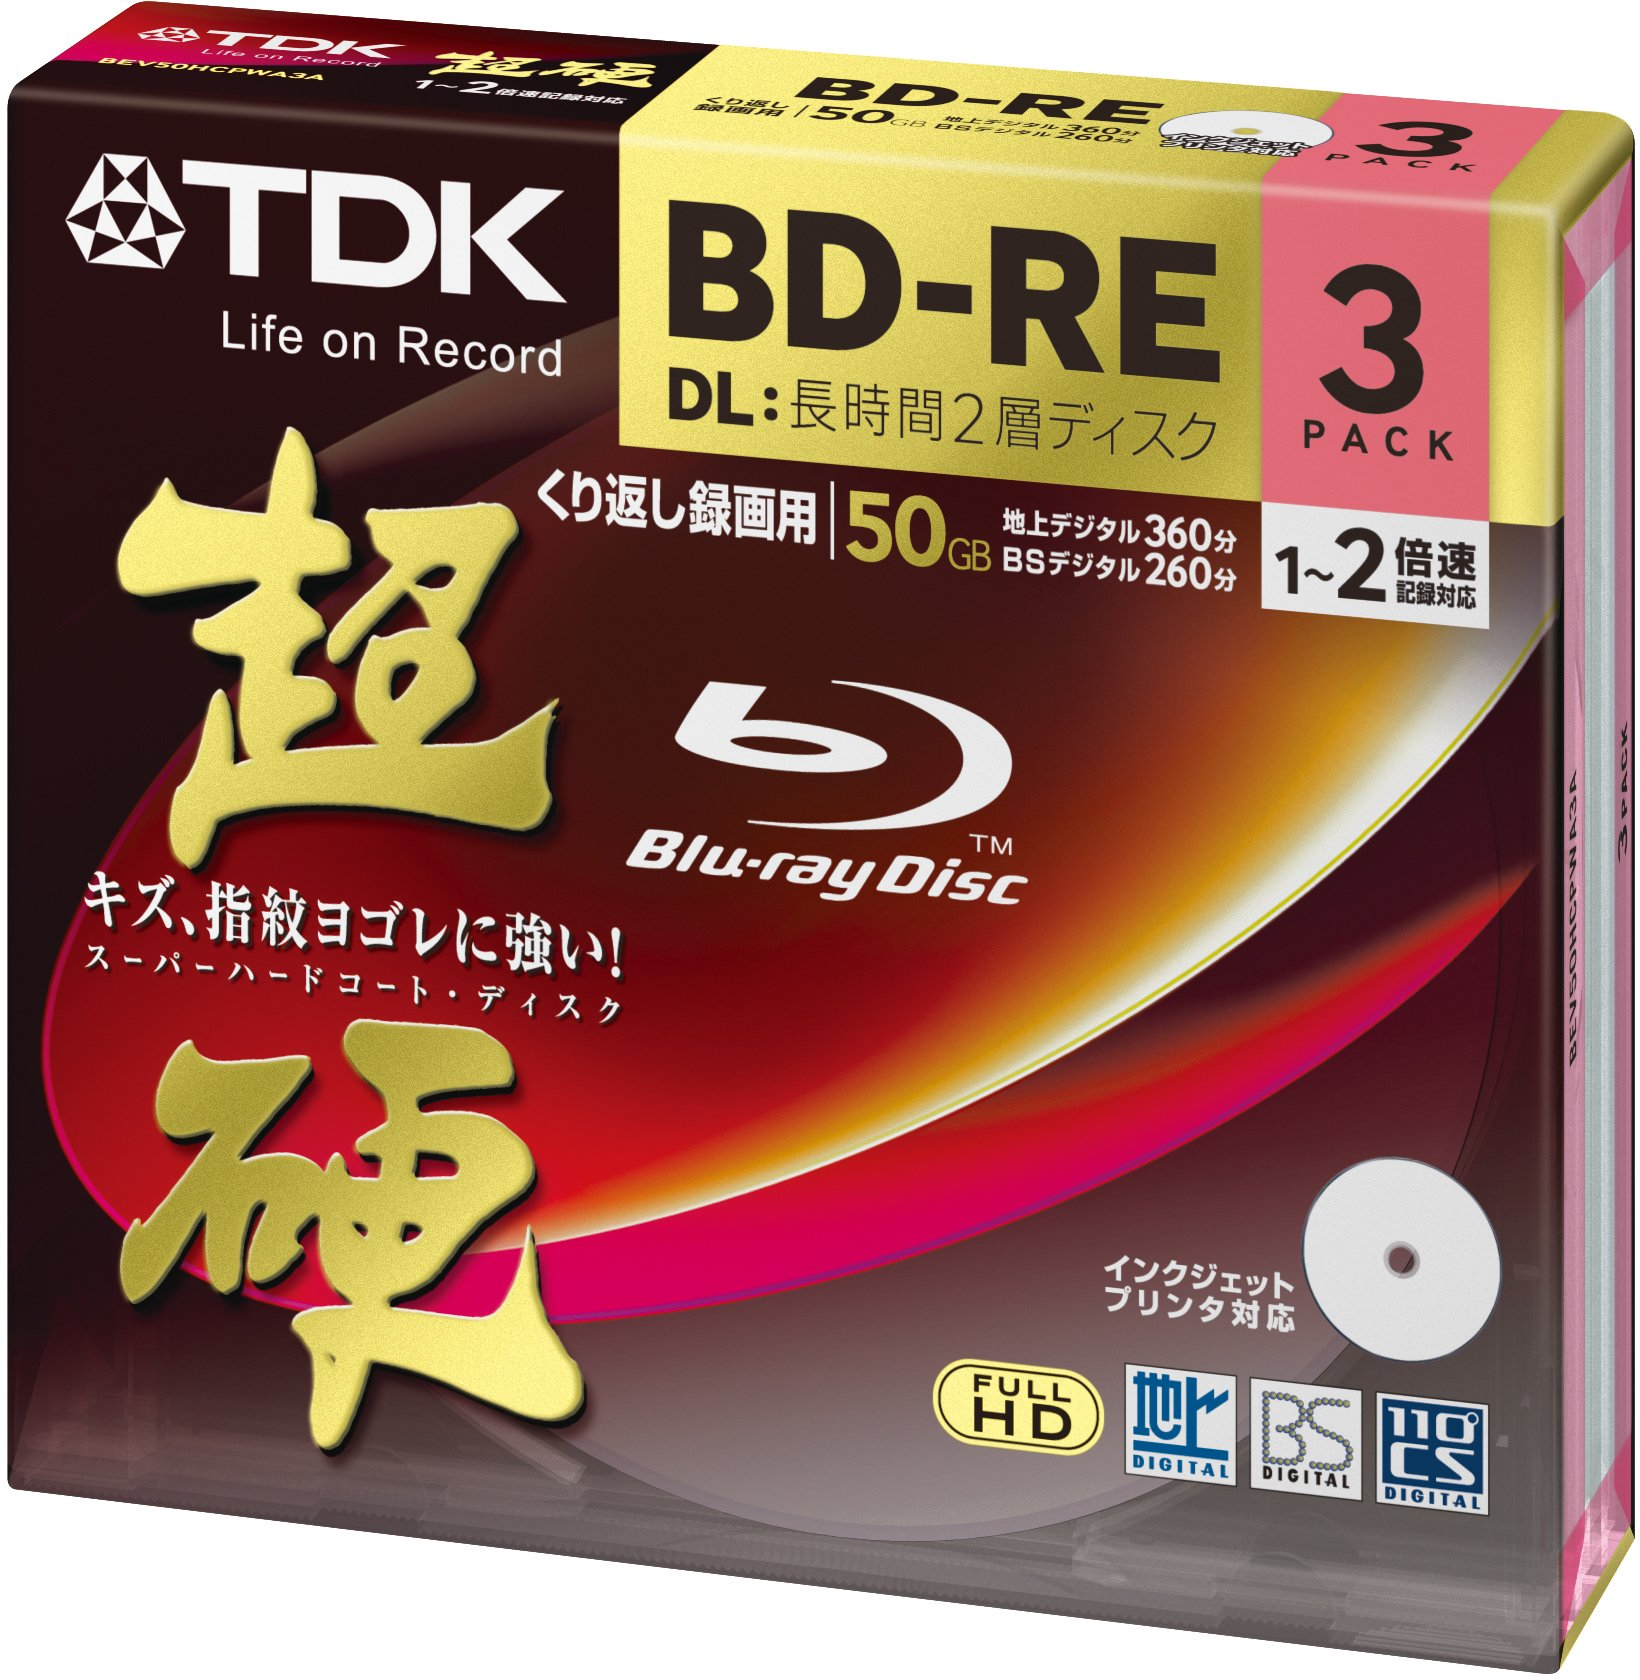 TDK Blu-ray BD-RE DL (Dual Layer) Re-writable Disk 50GB 2x Speed 3 Pack | Blu-ray Disc Rewritable Format Ver. 2.1 (Japan Import)